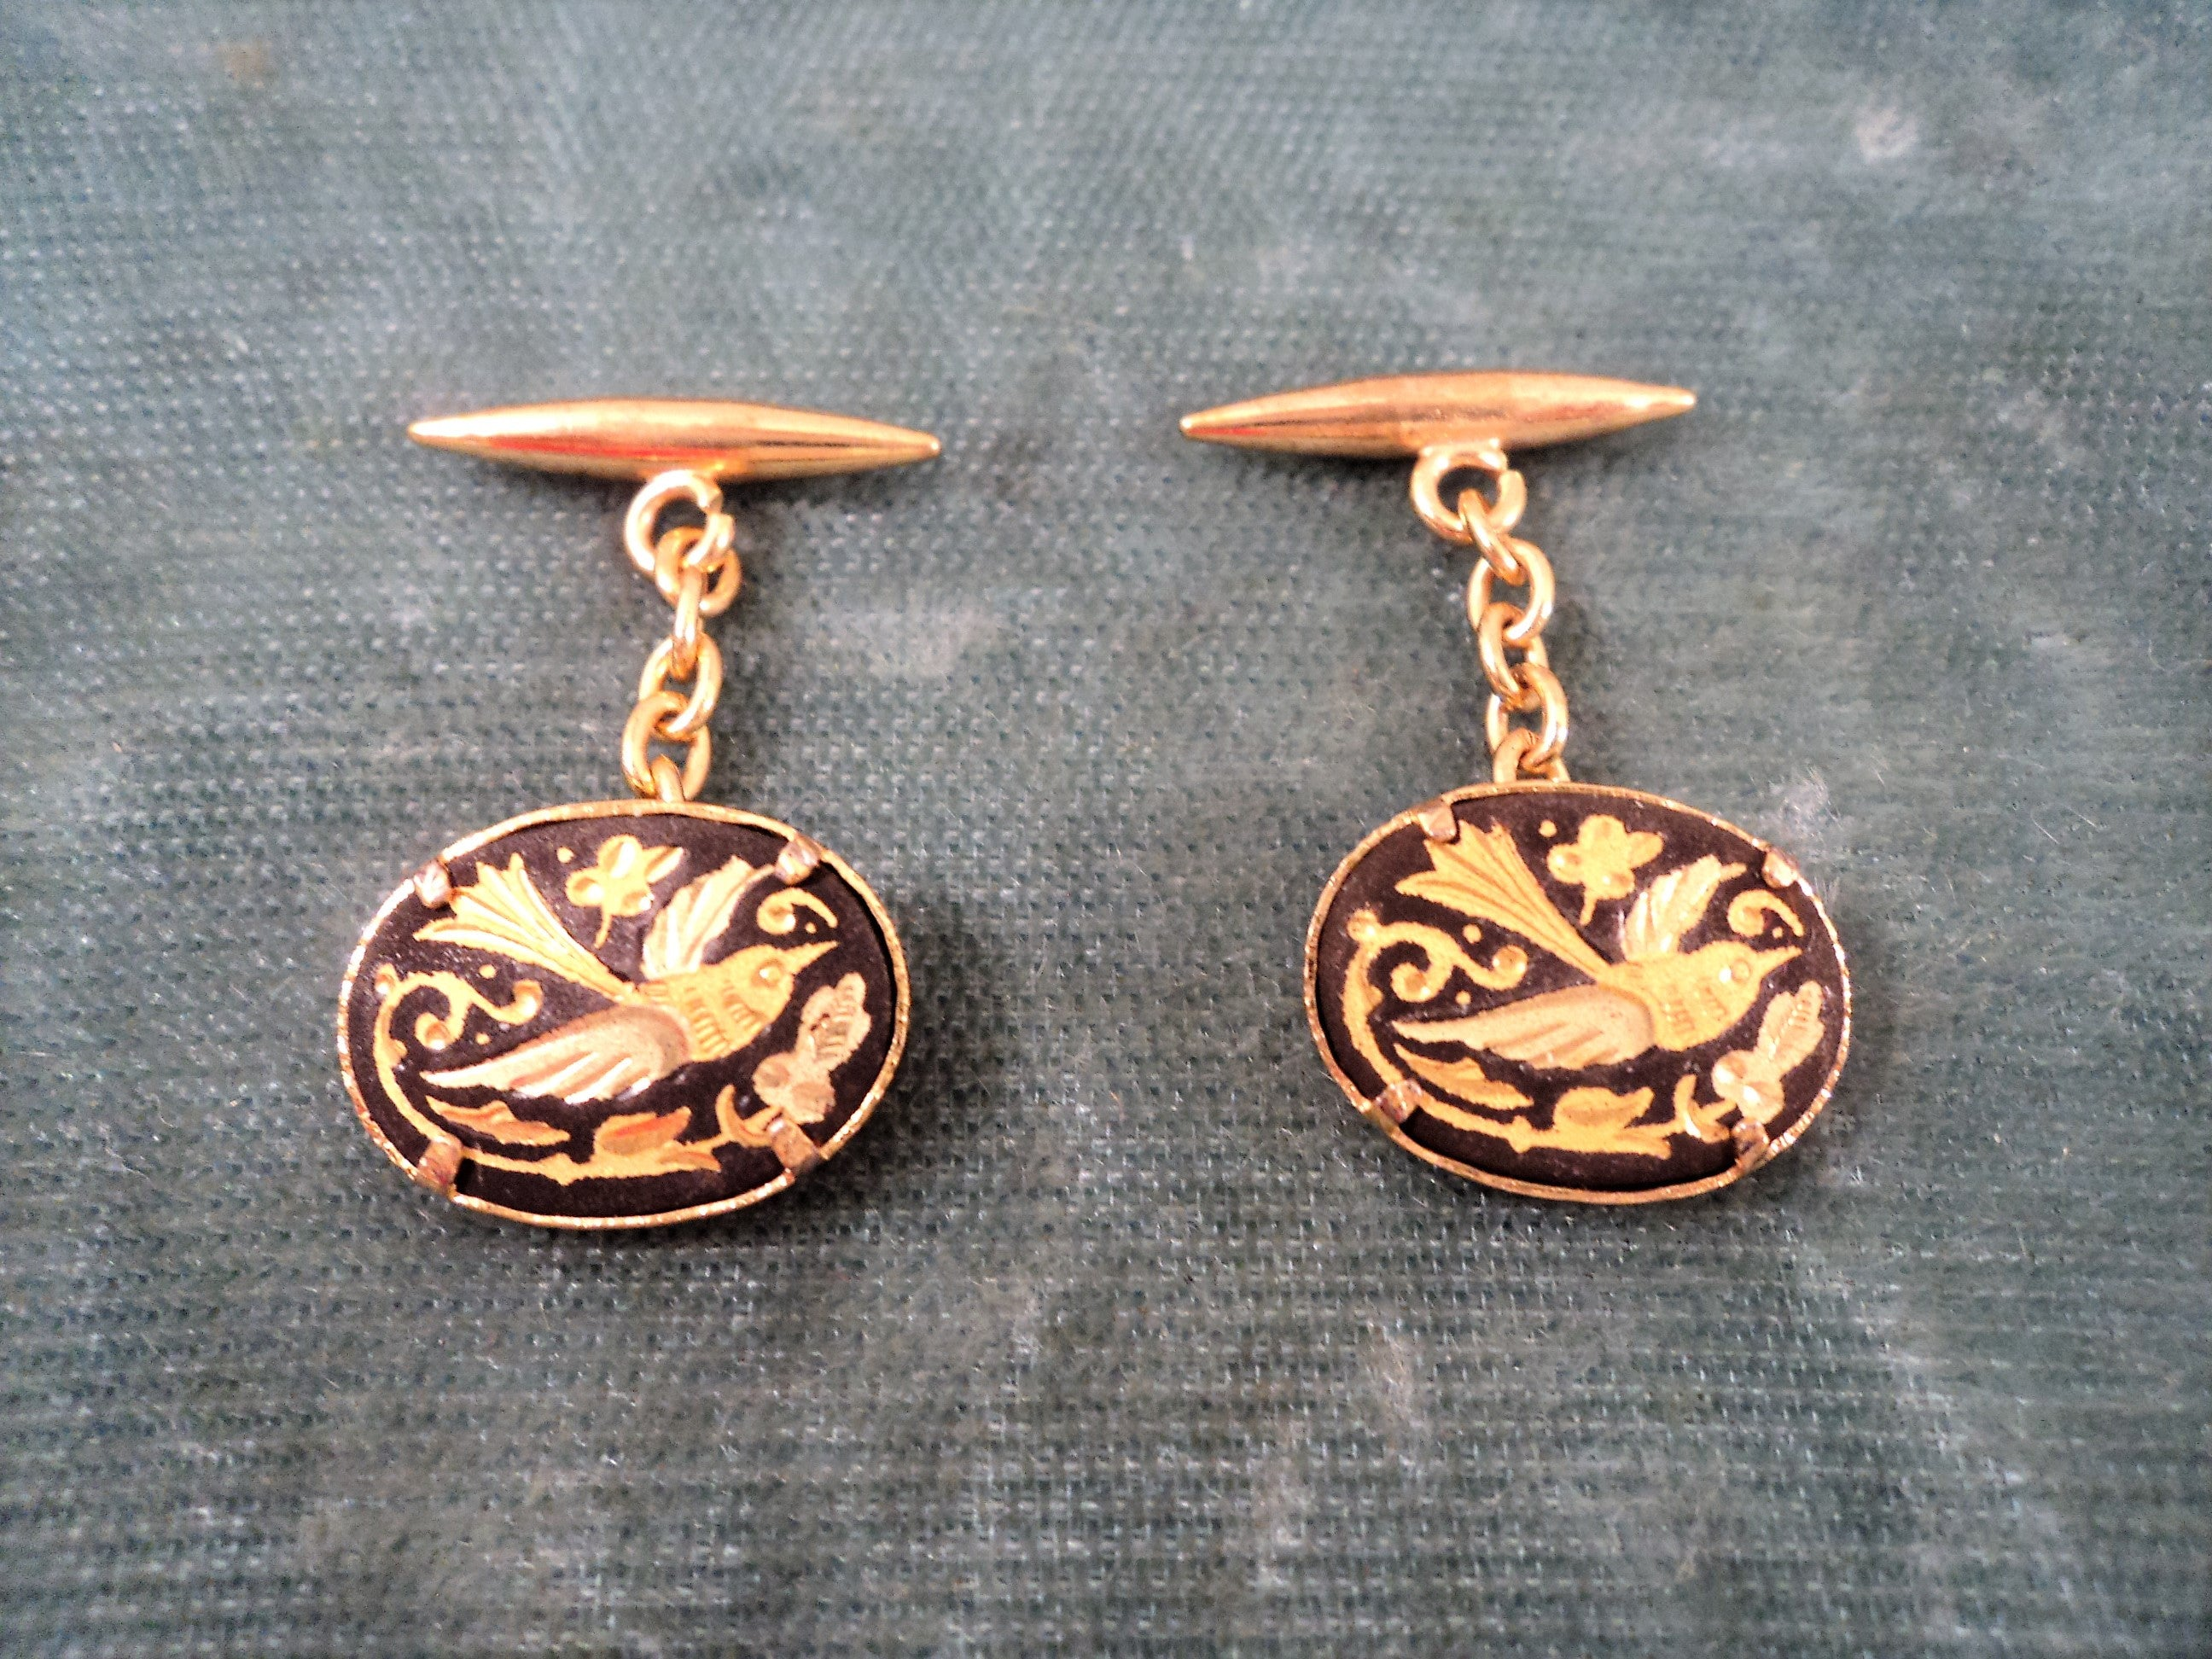 Vintage 24K Gold Foil Inlay Damascene Cuff Links